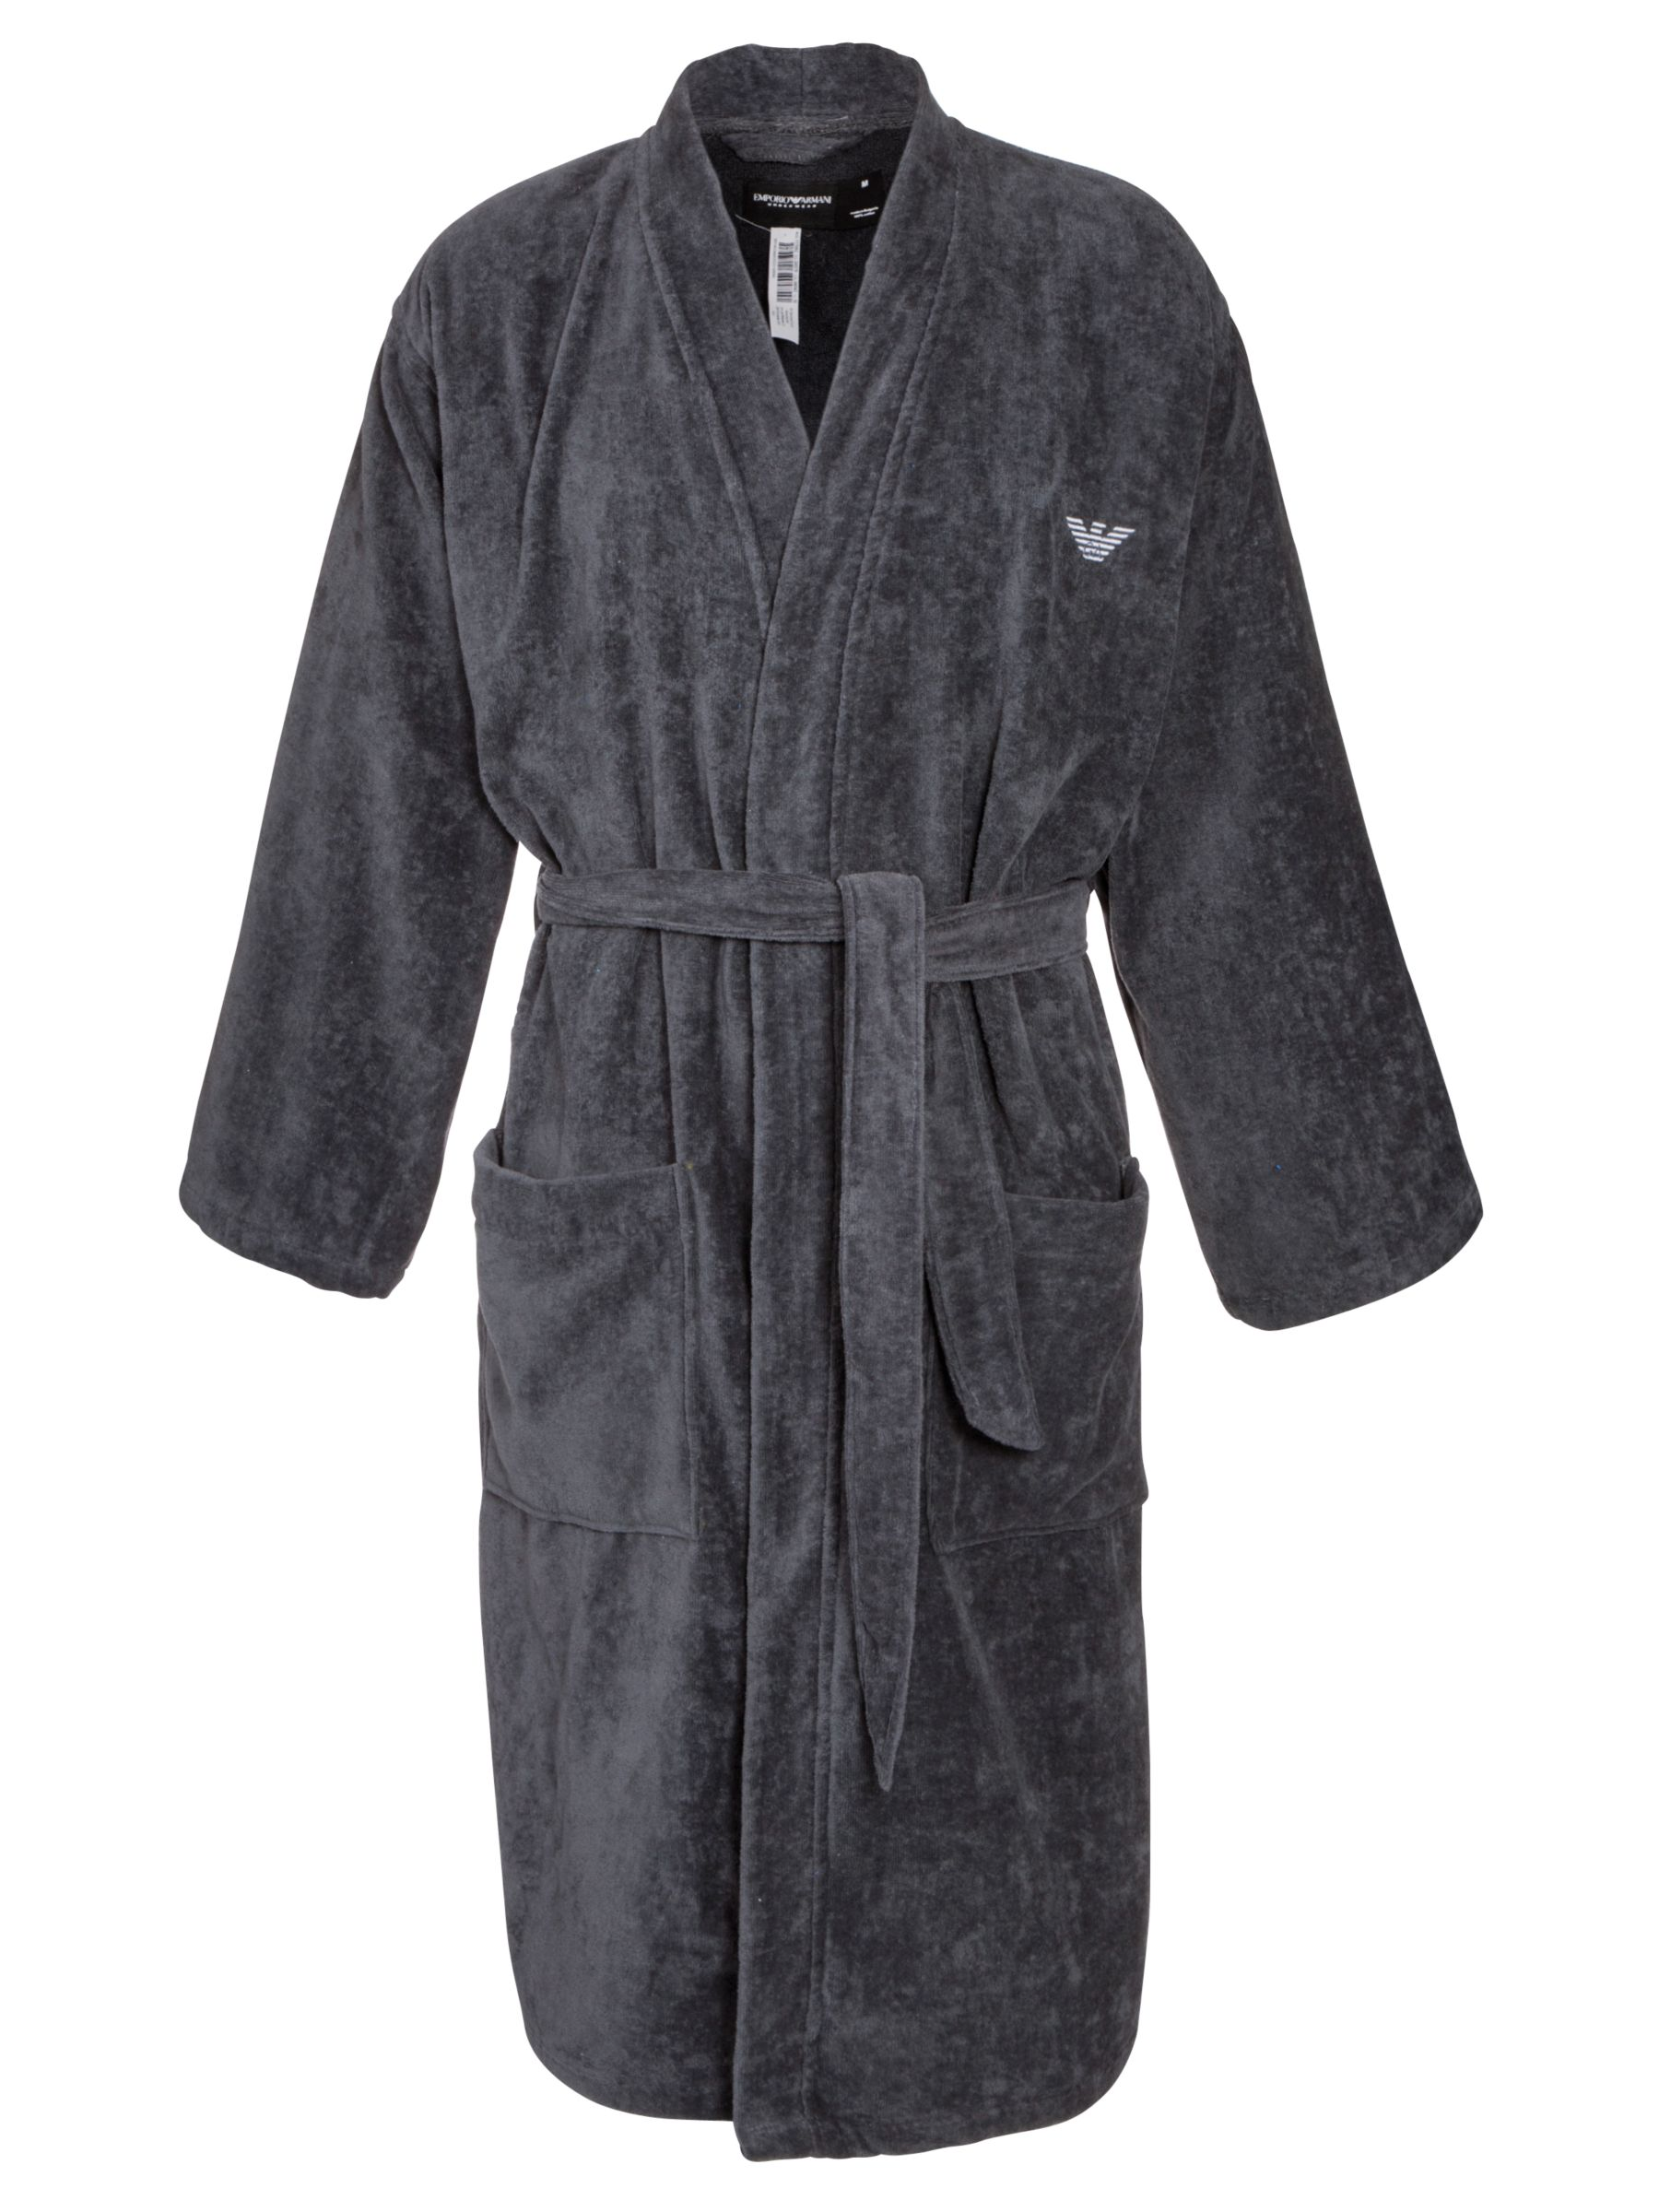 Emporio Armani Cotton Robe, Charcoal